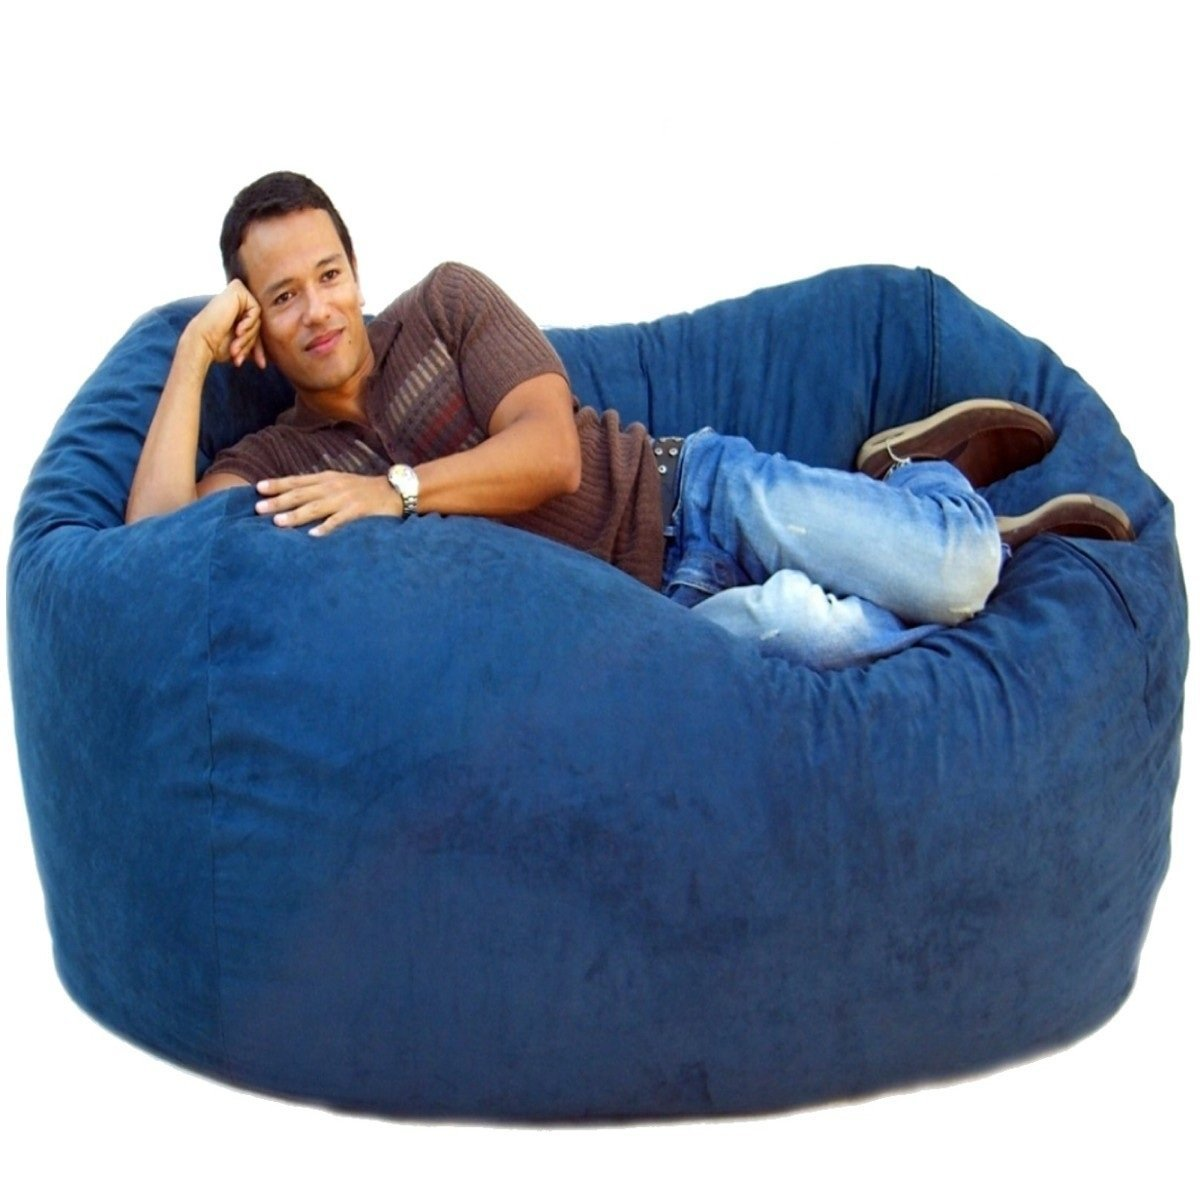 Blue Big Bean Bag Chairs